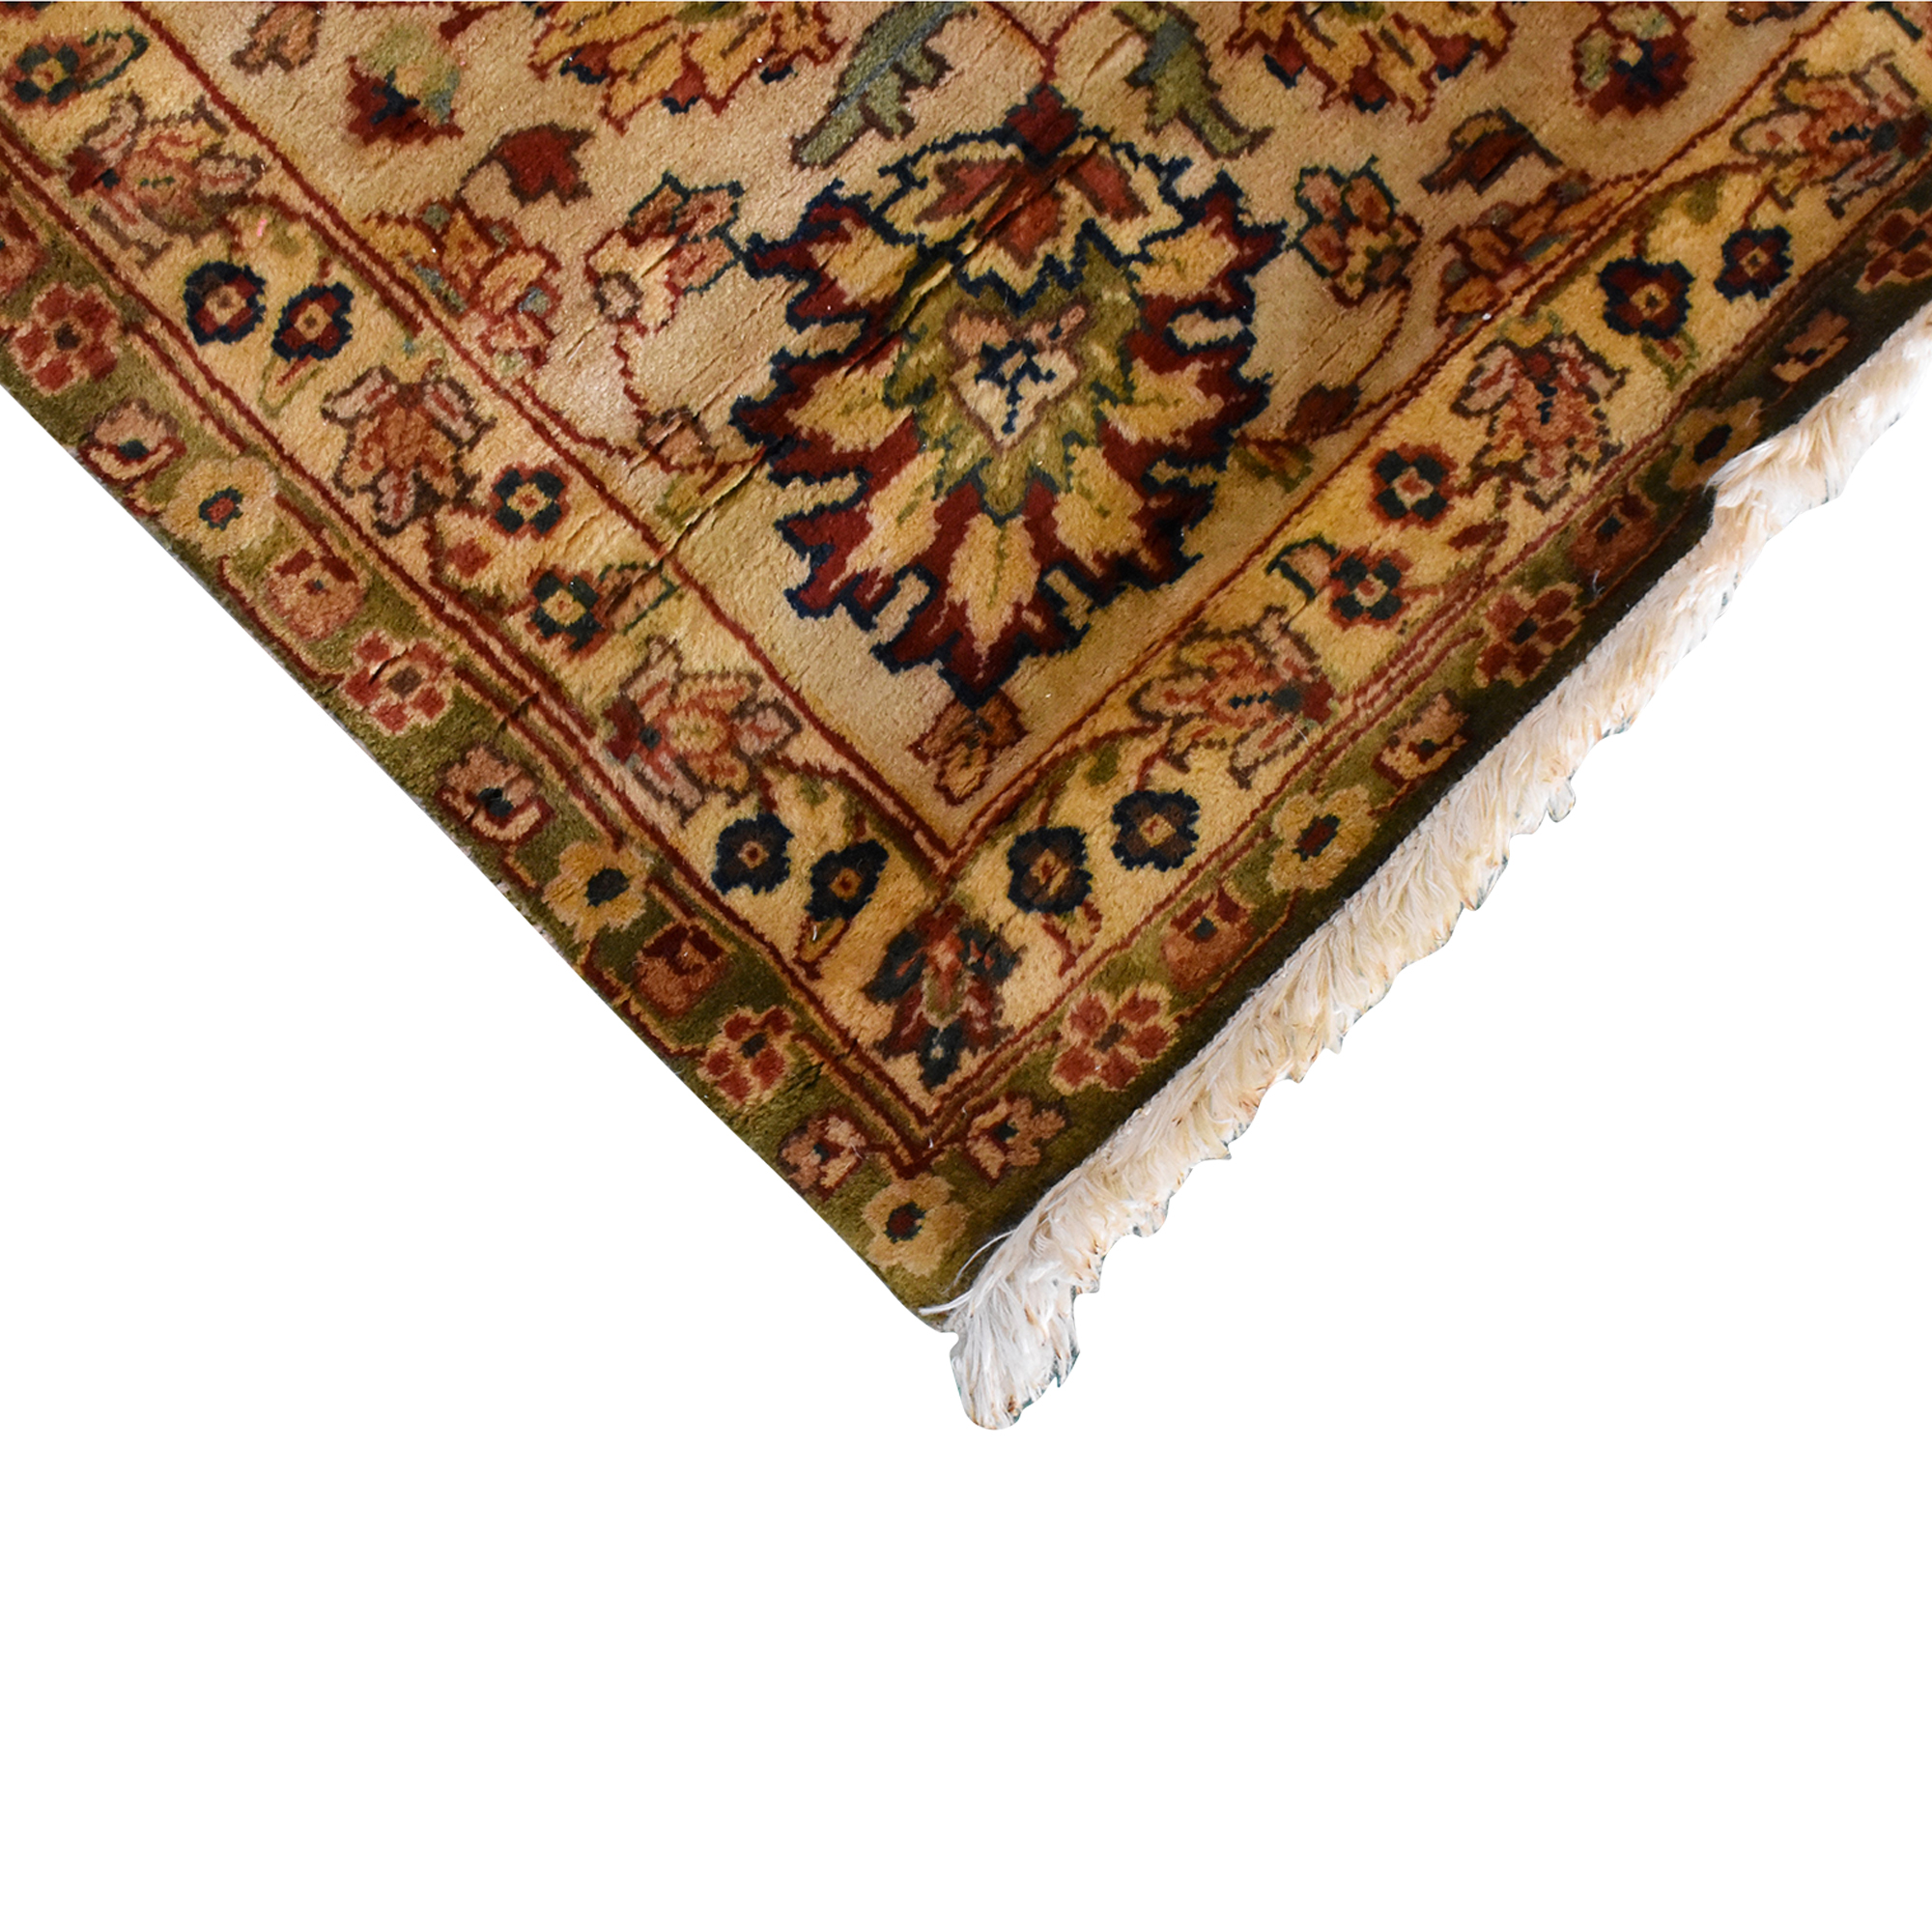 buy ABC Carpet & Home Patterned Area Rug ABC Carpet & Home Rugs